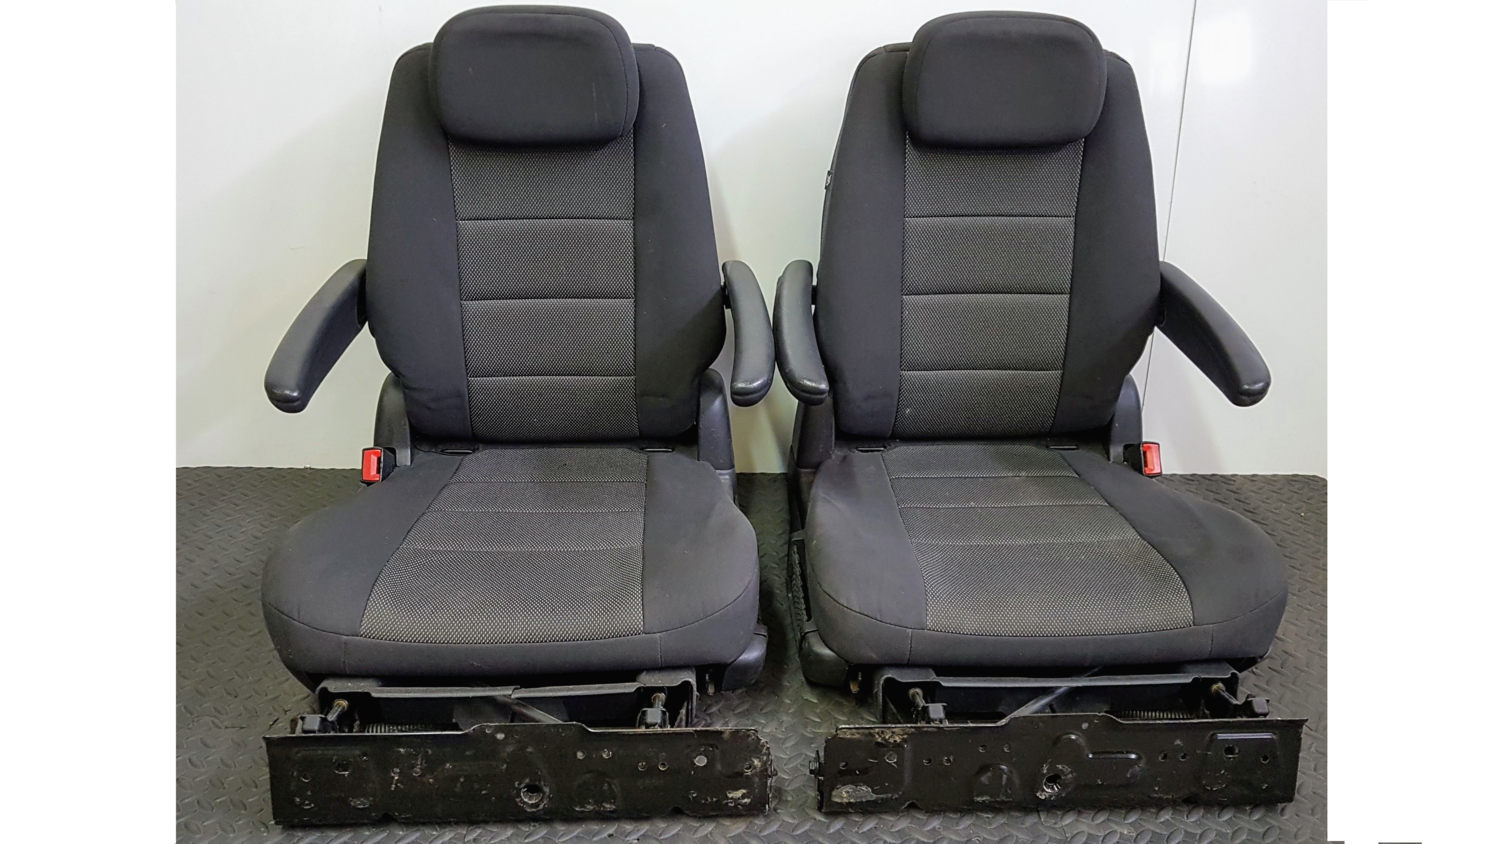 Stow 'n Go Seats